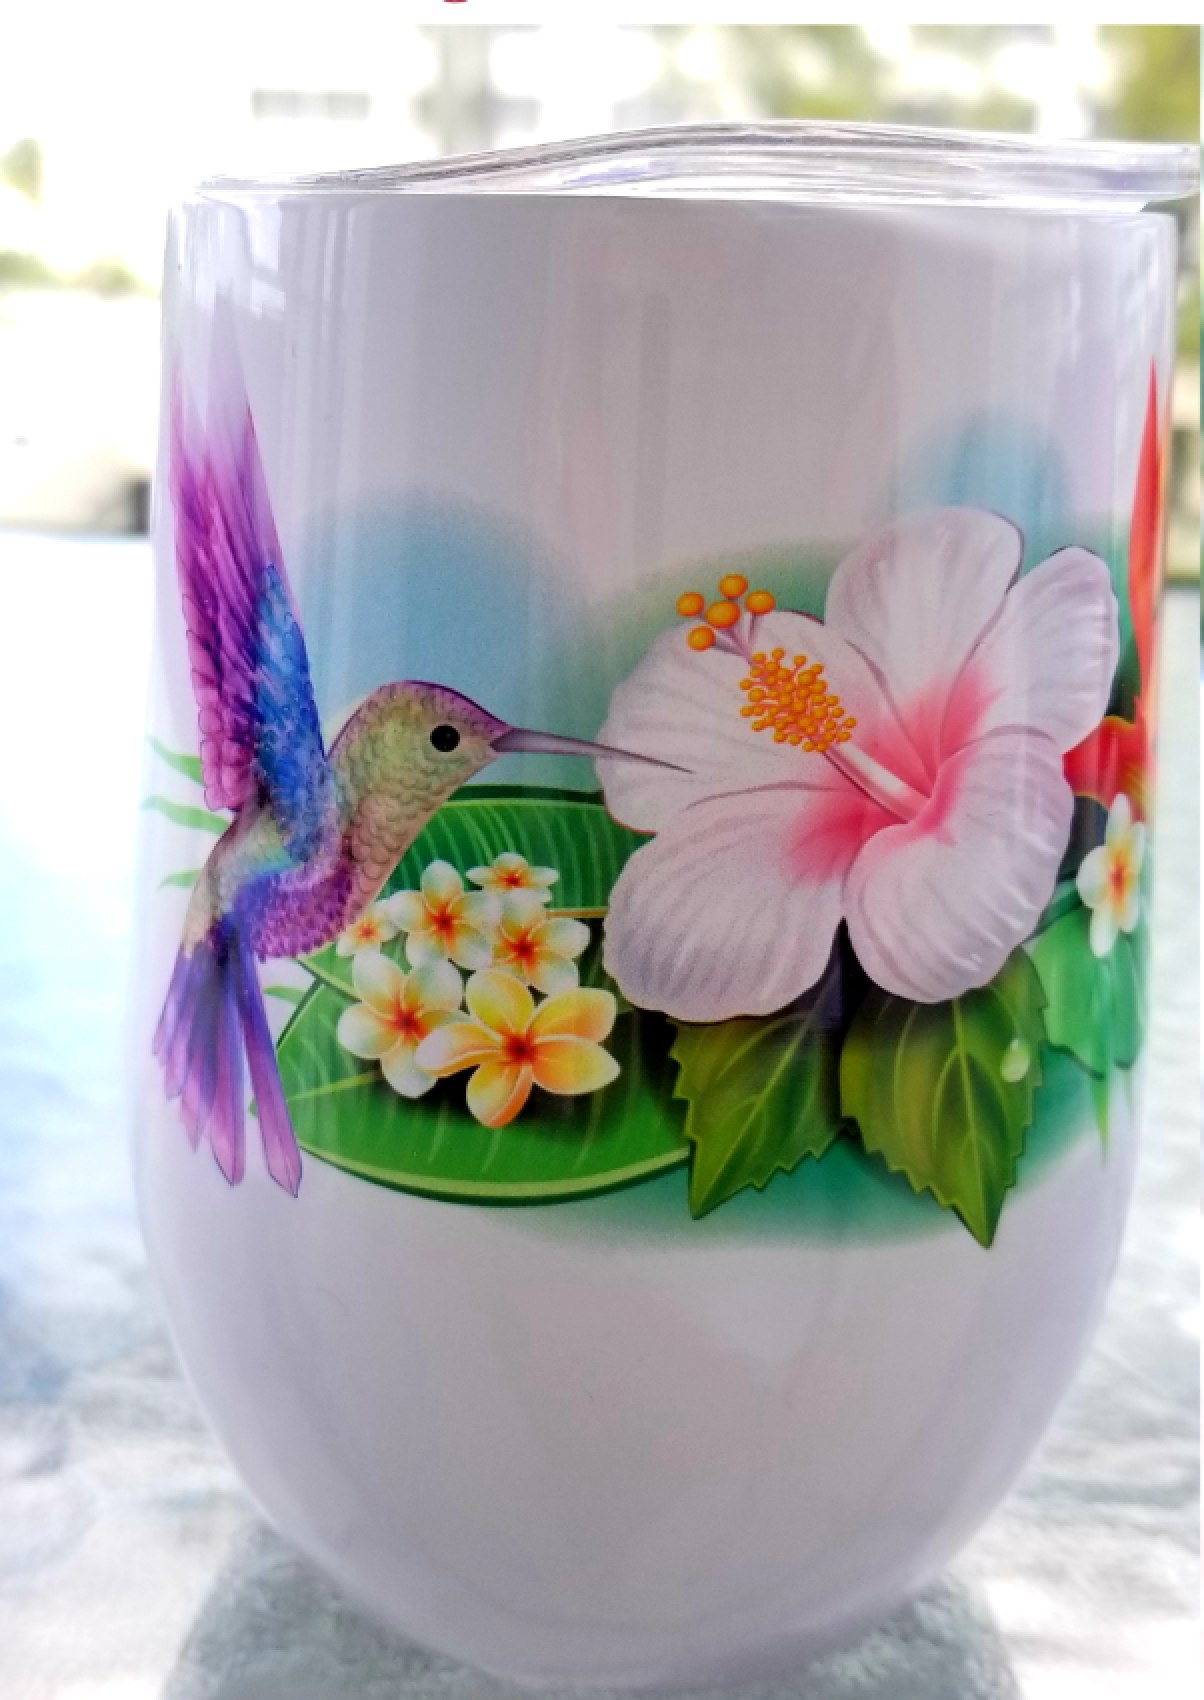 HUMMINGBIRD'S SONG (Wine Tumbler + Coffee Mug Designs)